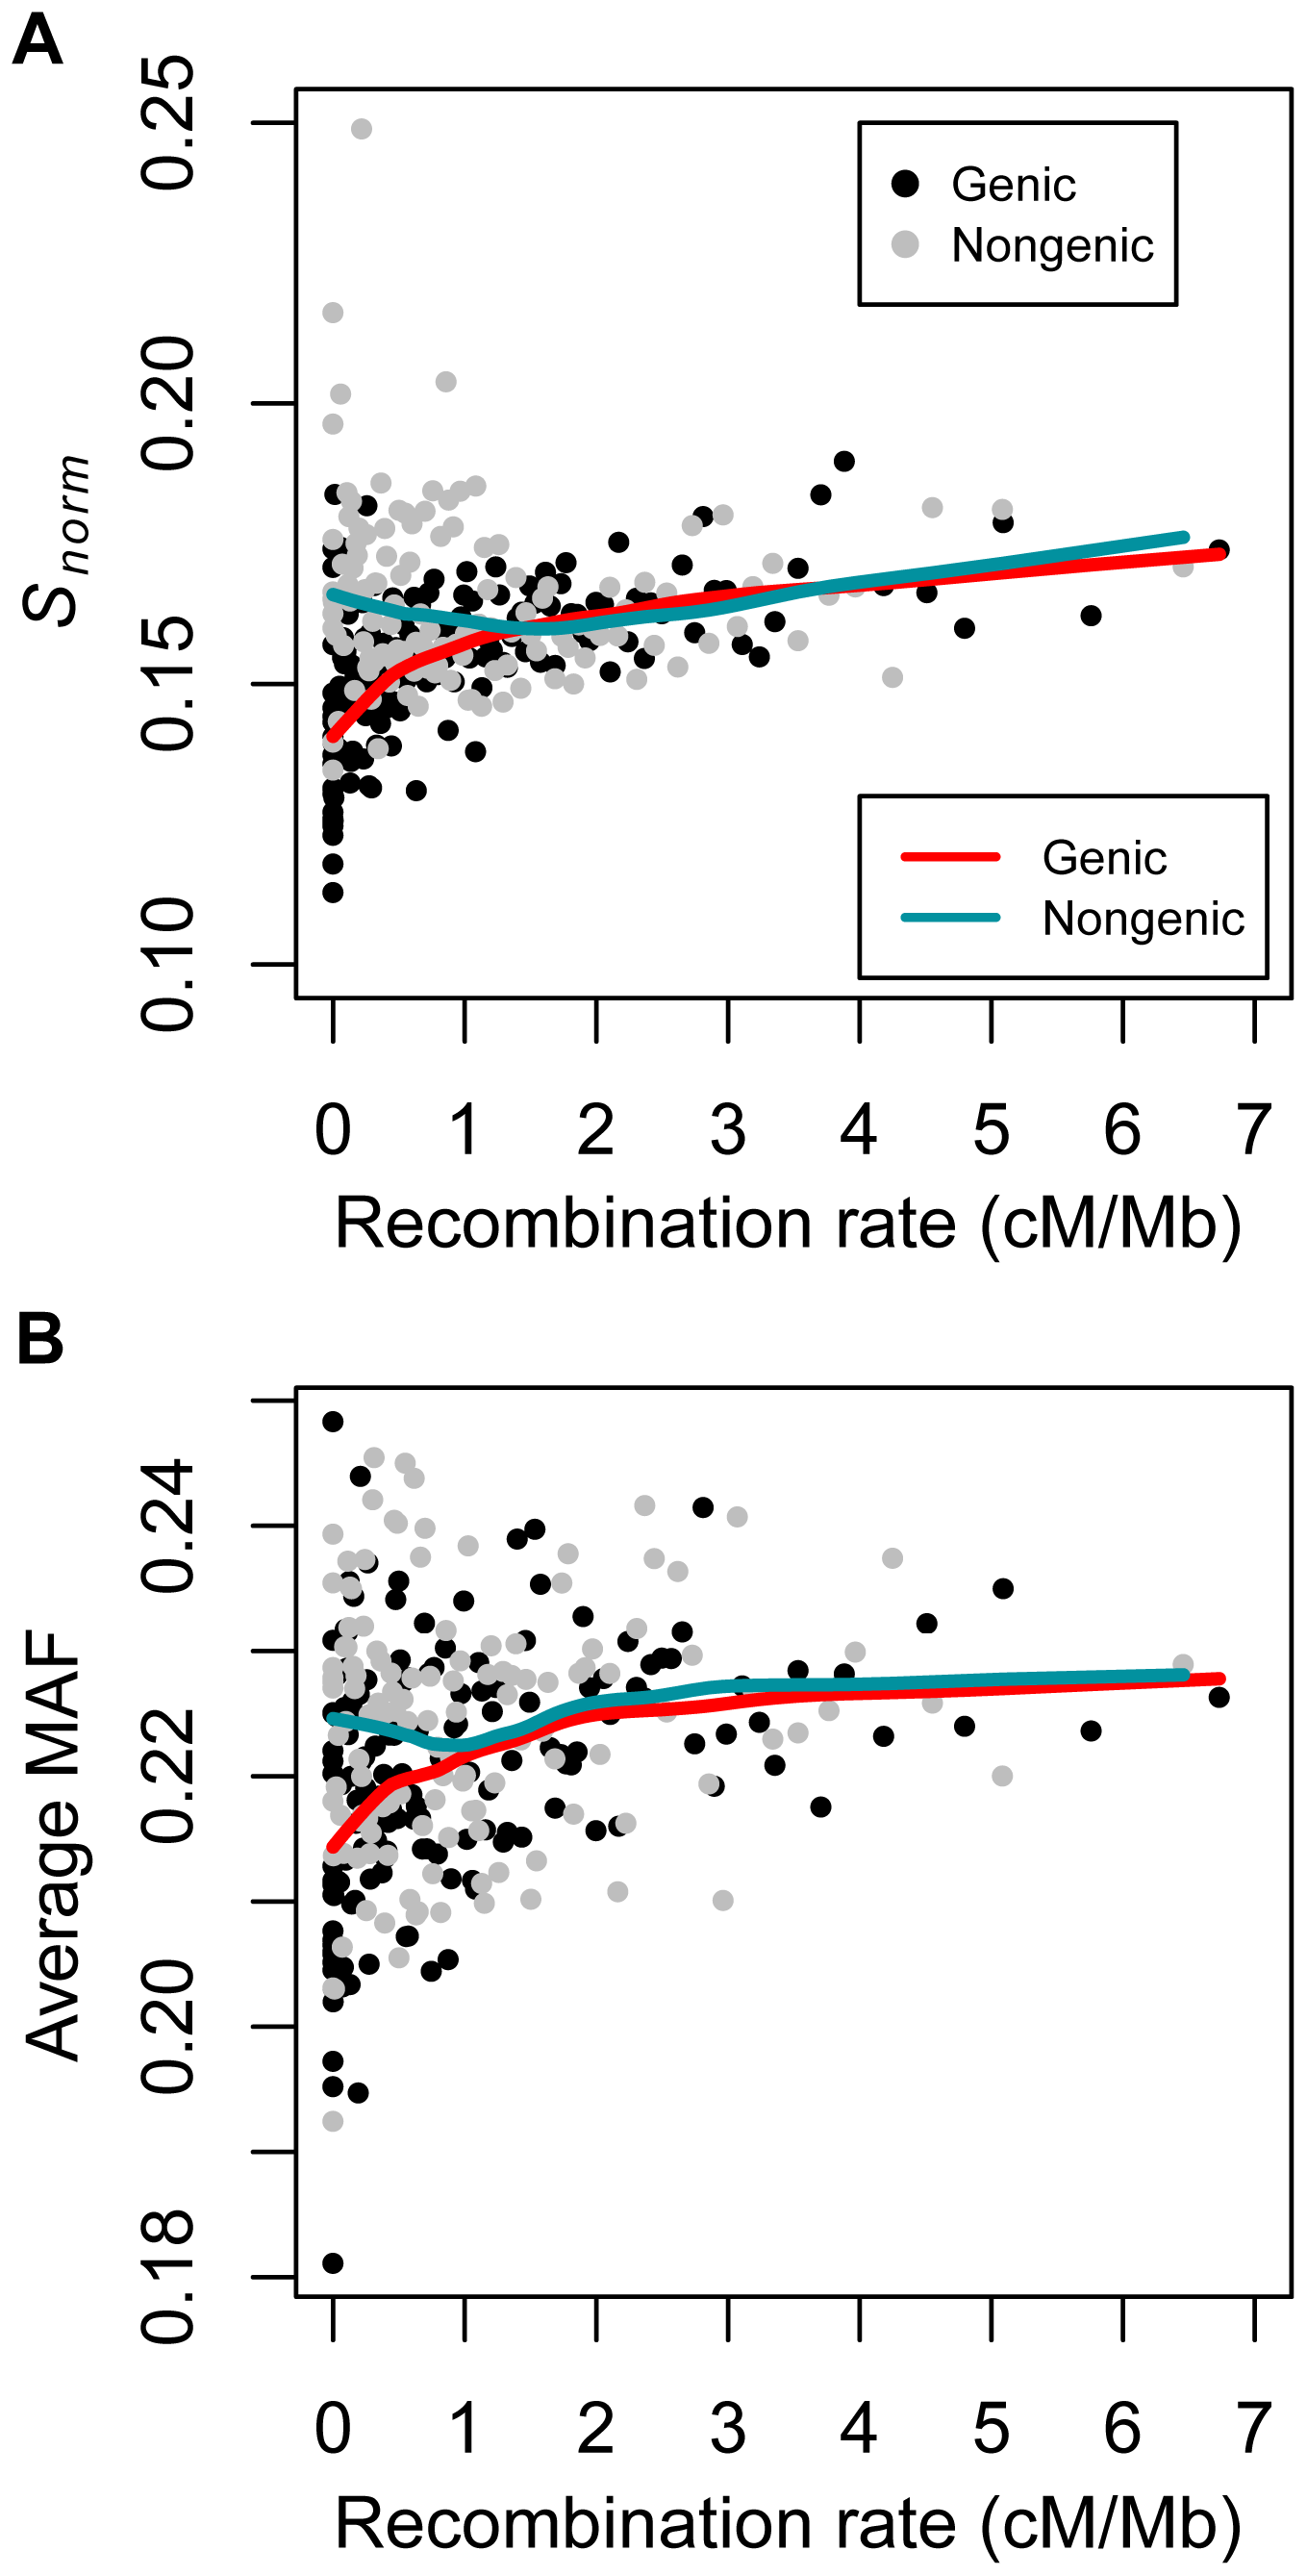 Correlations between summaries of genetic variation and recombination rate in the low-coverage dataset dividing the data into genic and non-genic windows (see text).